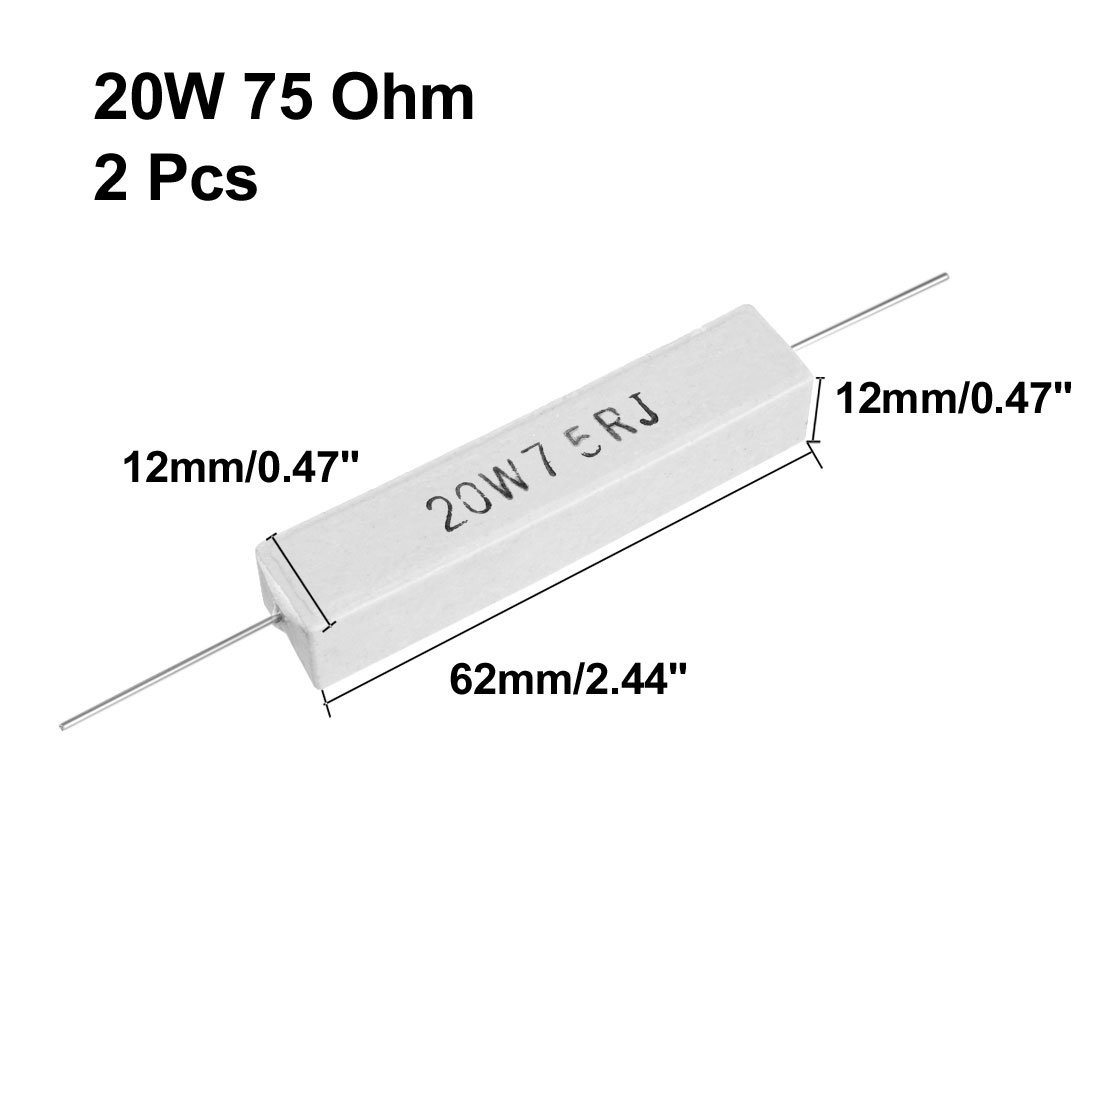 uxcell 20W 2 Ohm Power Resistor Ceramic Cement Resistor Axial Lead White 2pcs